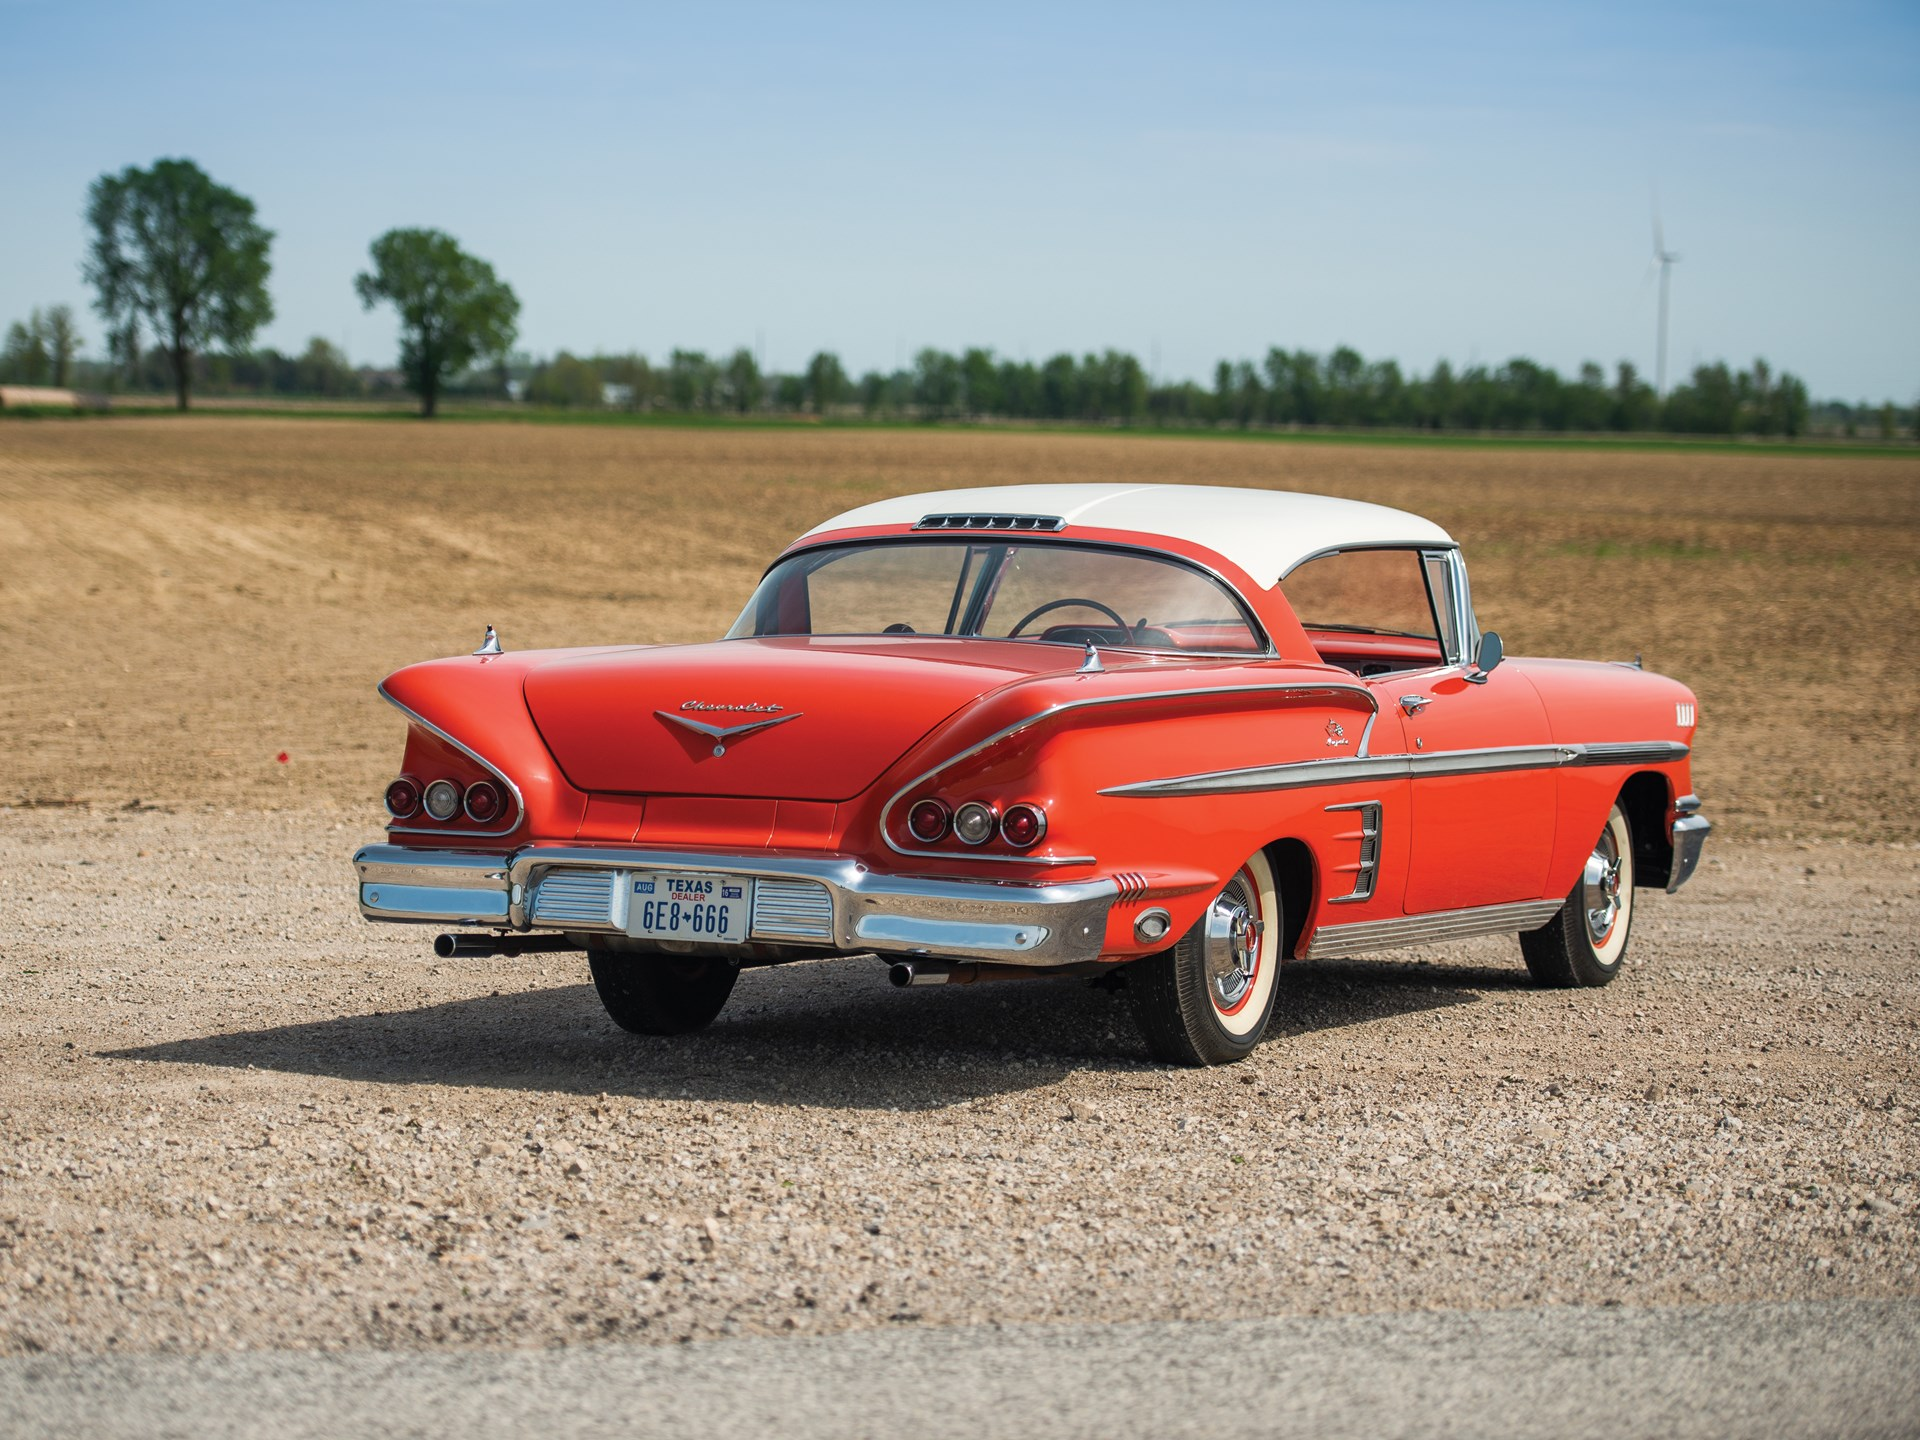 1958 Chevrolet Bel Air Impala Sport Coupe